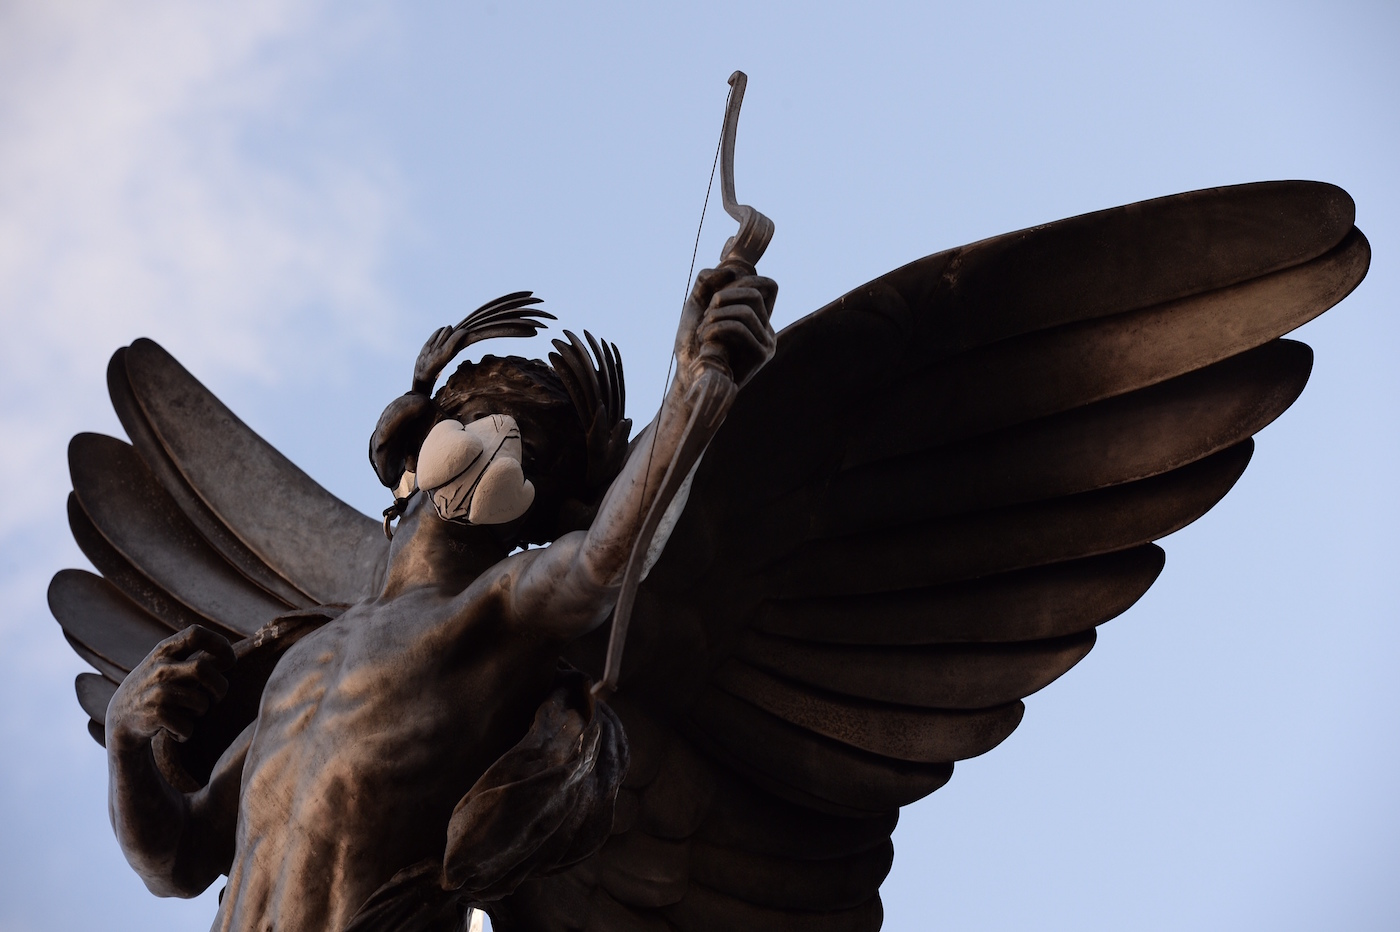 The Eros statue in Piccadilly Circus with an emergency face mask (photo by Chris Ratcliffe)